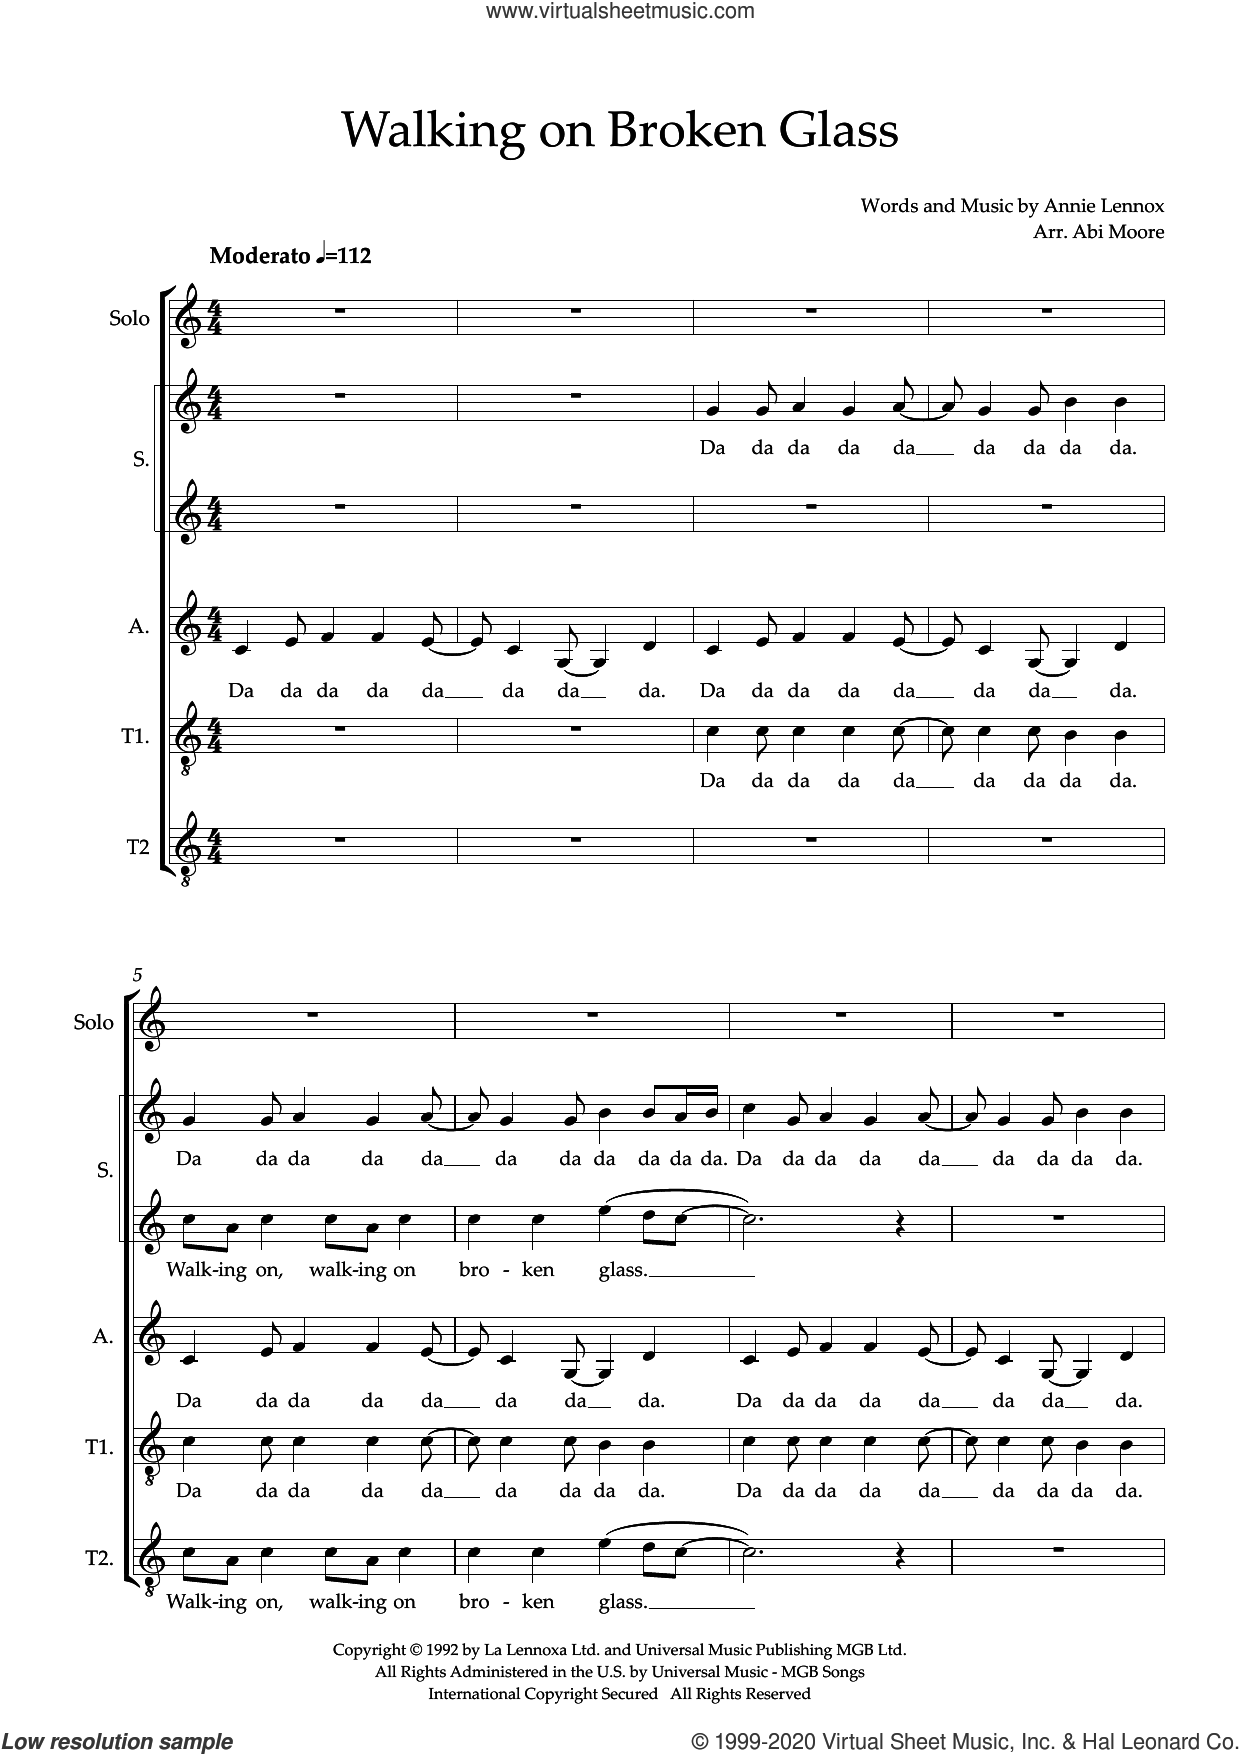 Walking On Broken Glass (arr. Abi Moore) sheet music for choir (SSATB) by Annie Lennox and Abi Moore, intermediate skill level